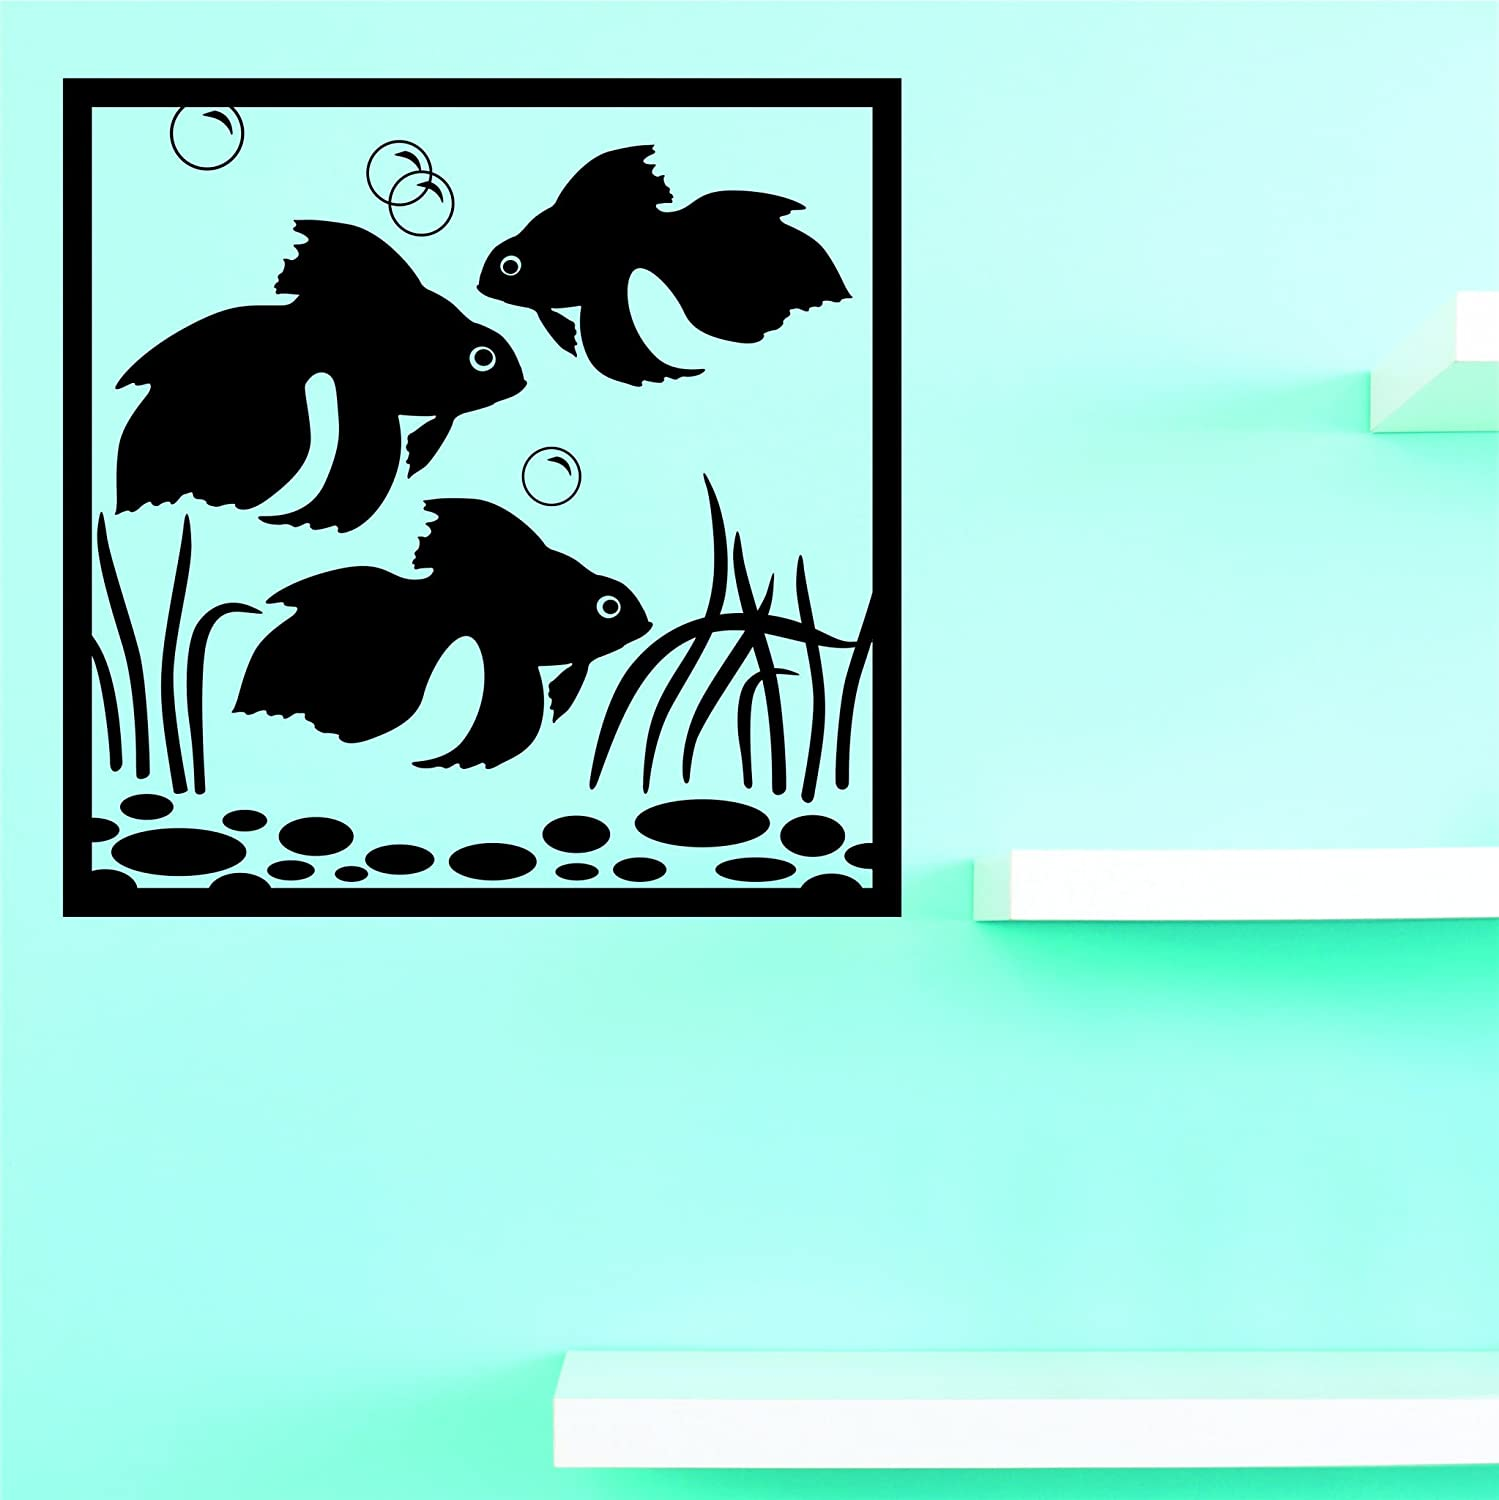 12 x 18, Design with Vinyl JER 2209 1 Hot New Decals Golffish Wall Art Size Black 12 Inches x 18 Inches Color